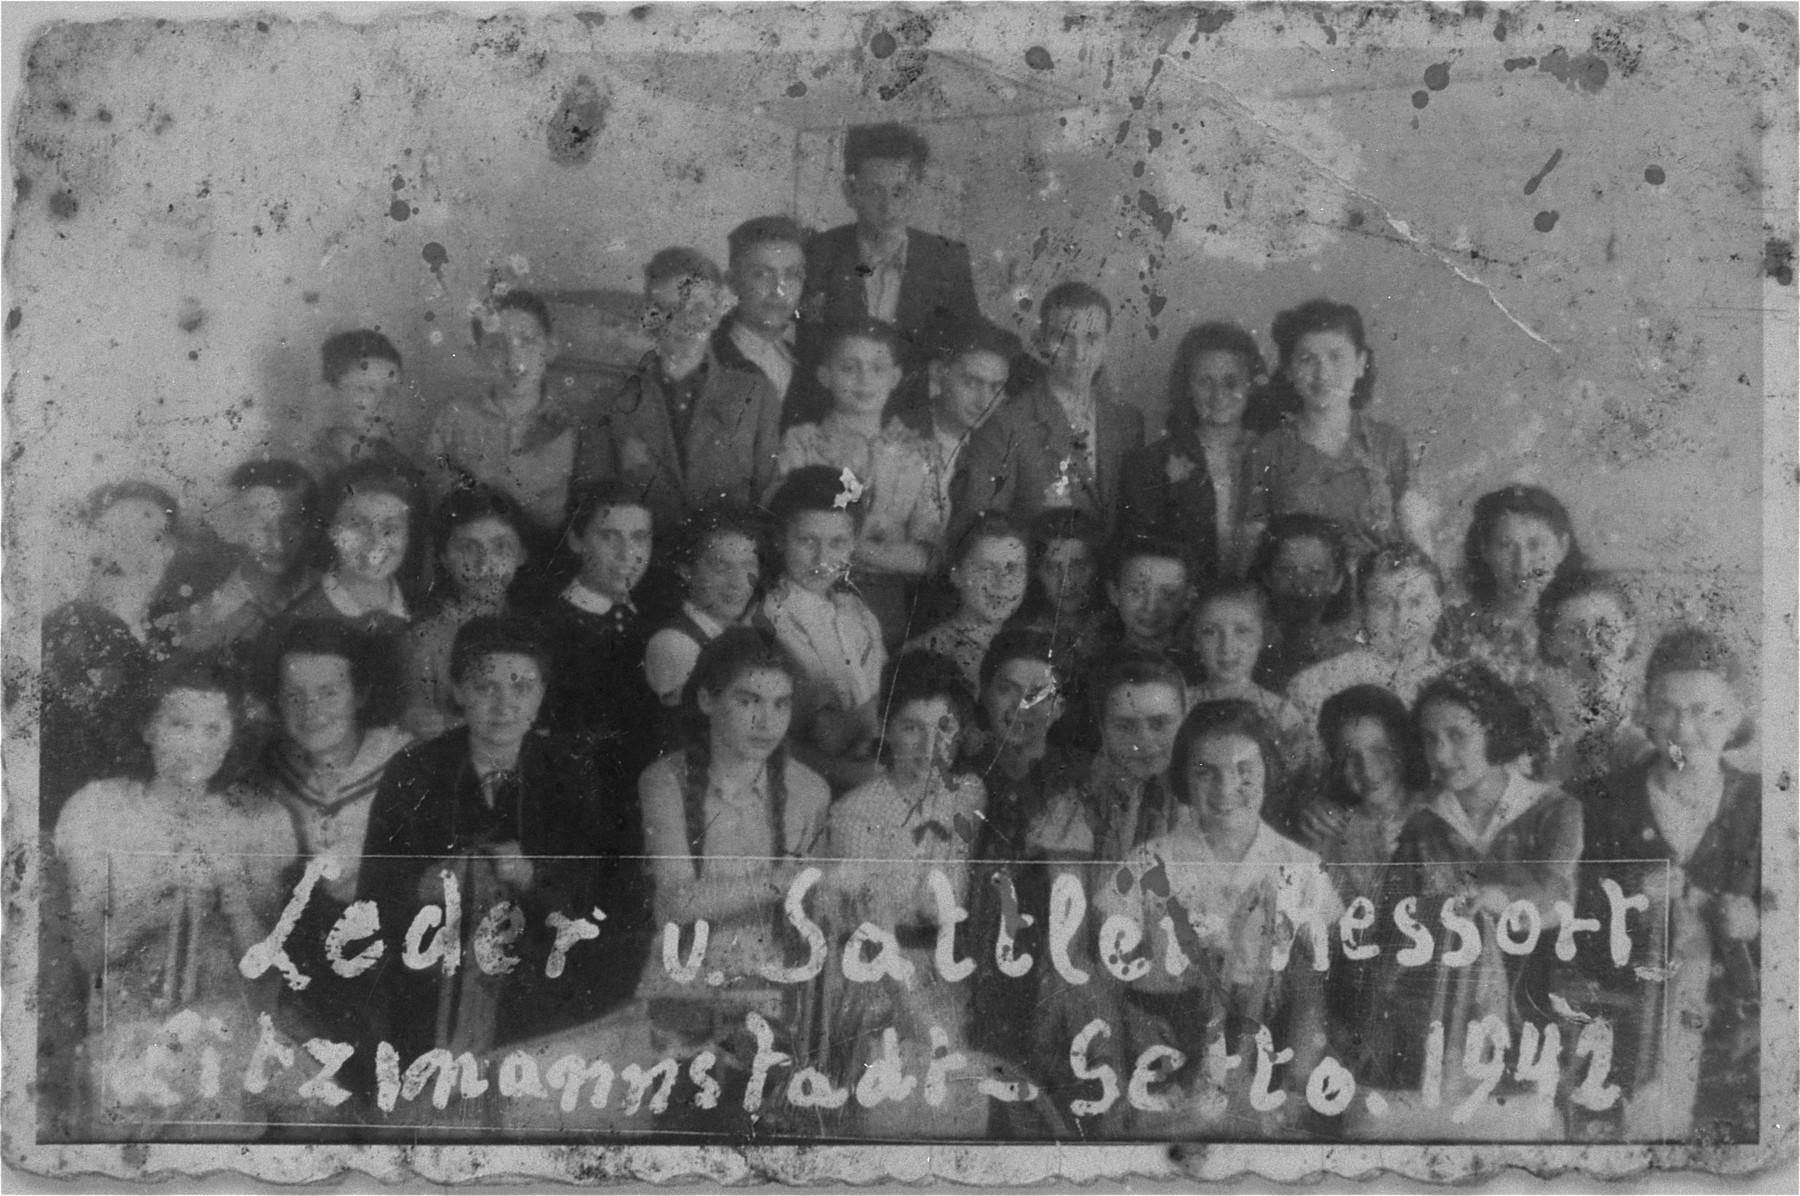 Group portrait of young forced laborers at the leather and saddle-making workshop in the Lodz ghetto.  Jakob Budkowski is pictured second row from the bottom, second from the left.